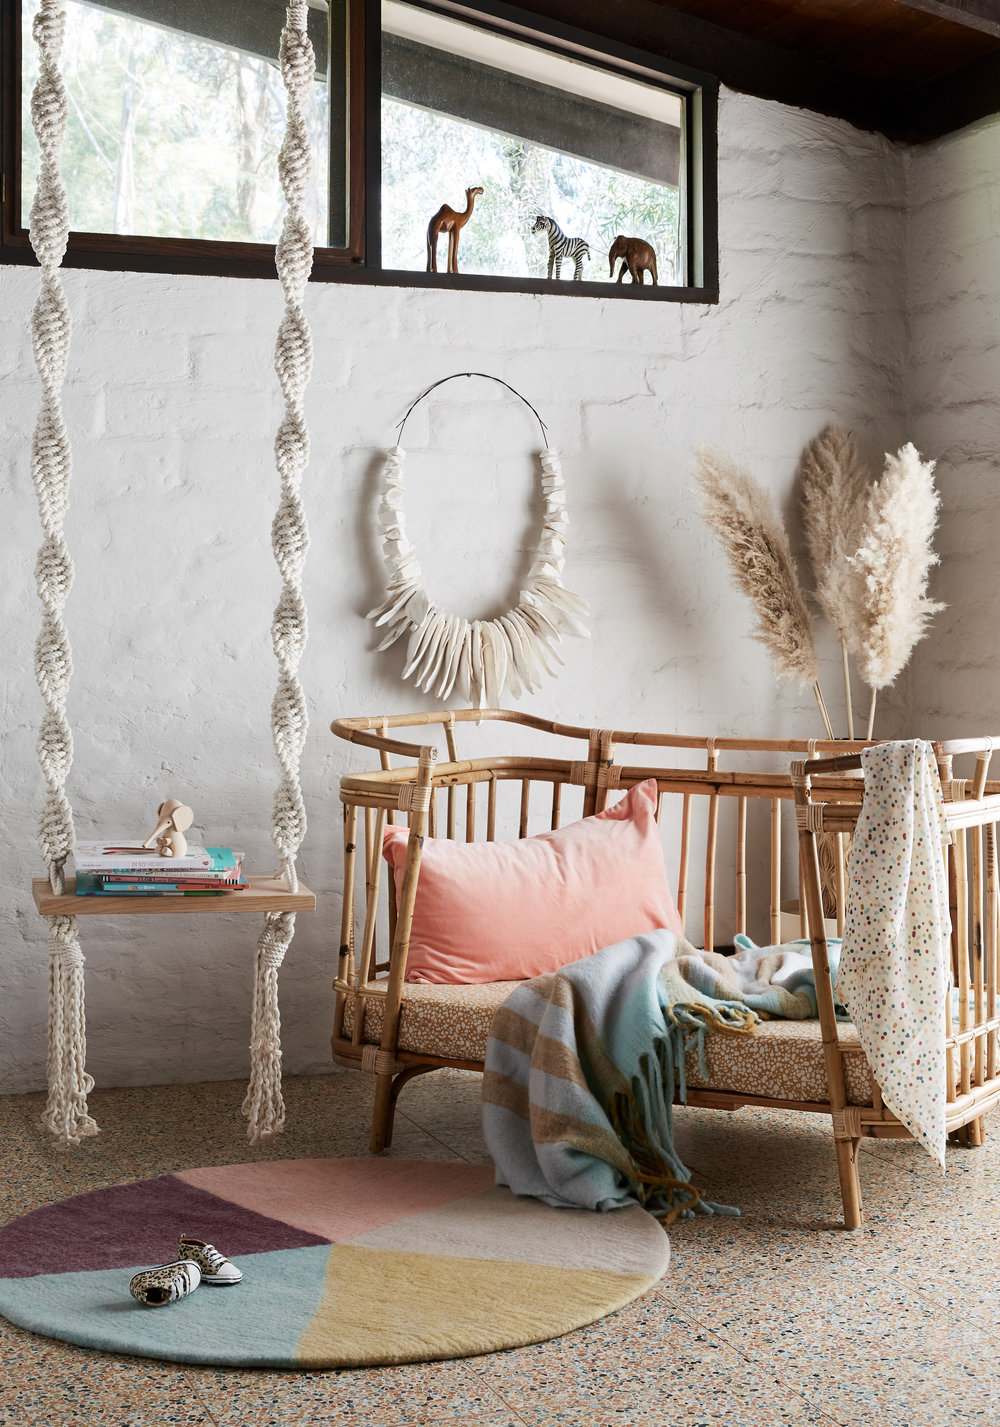 The Chubby Swing - Featured in the brand new Sage & Clare